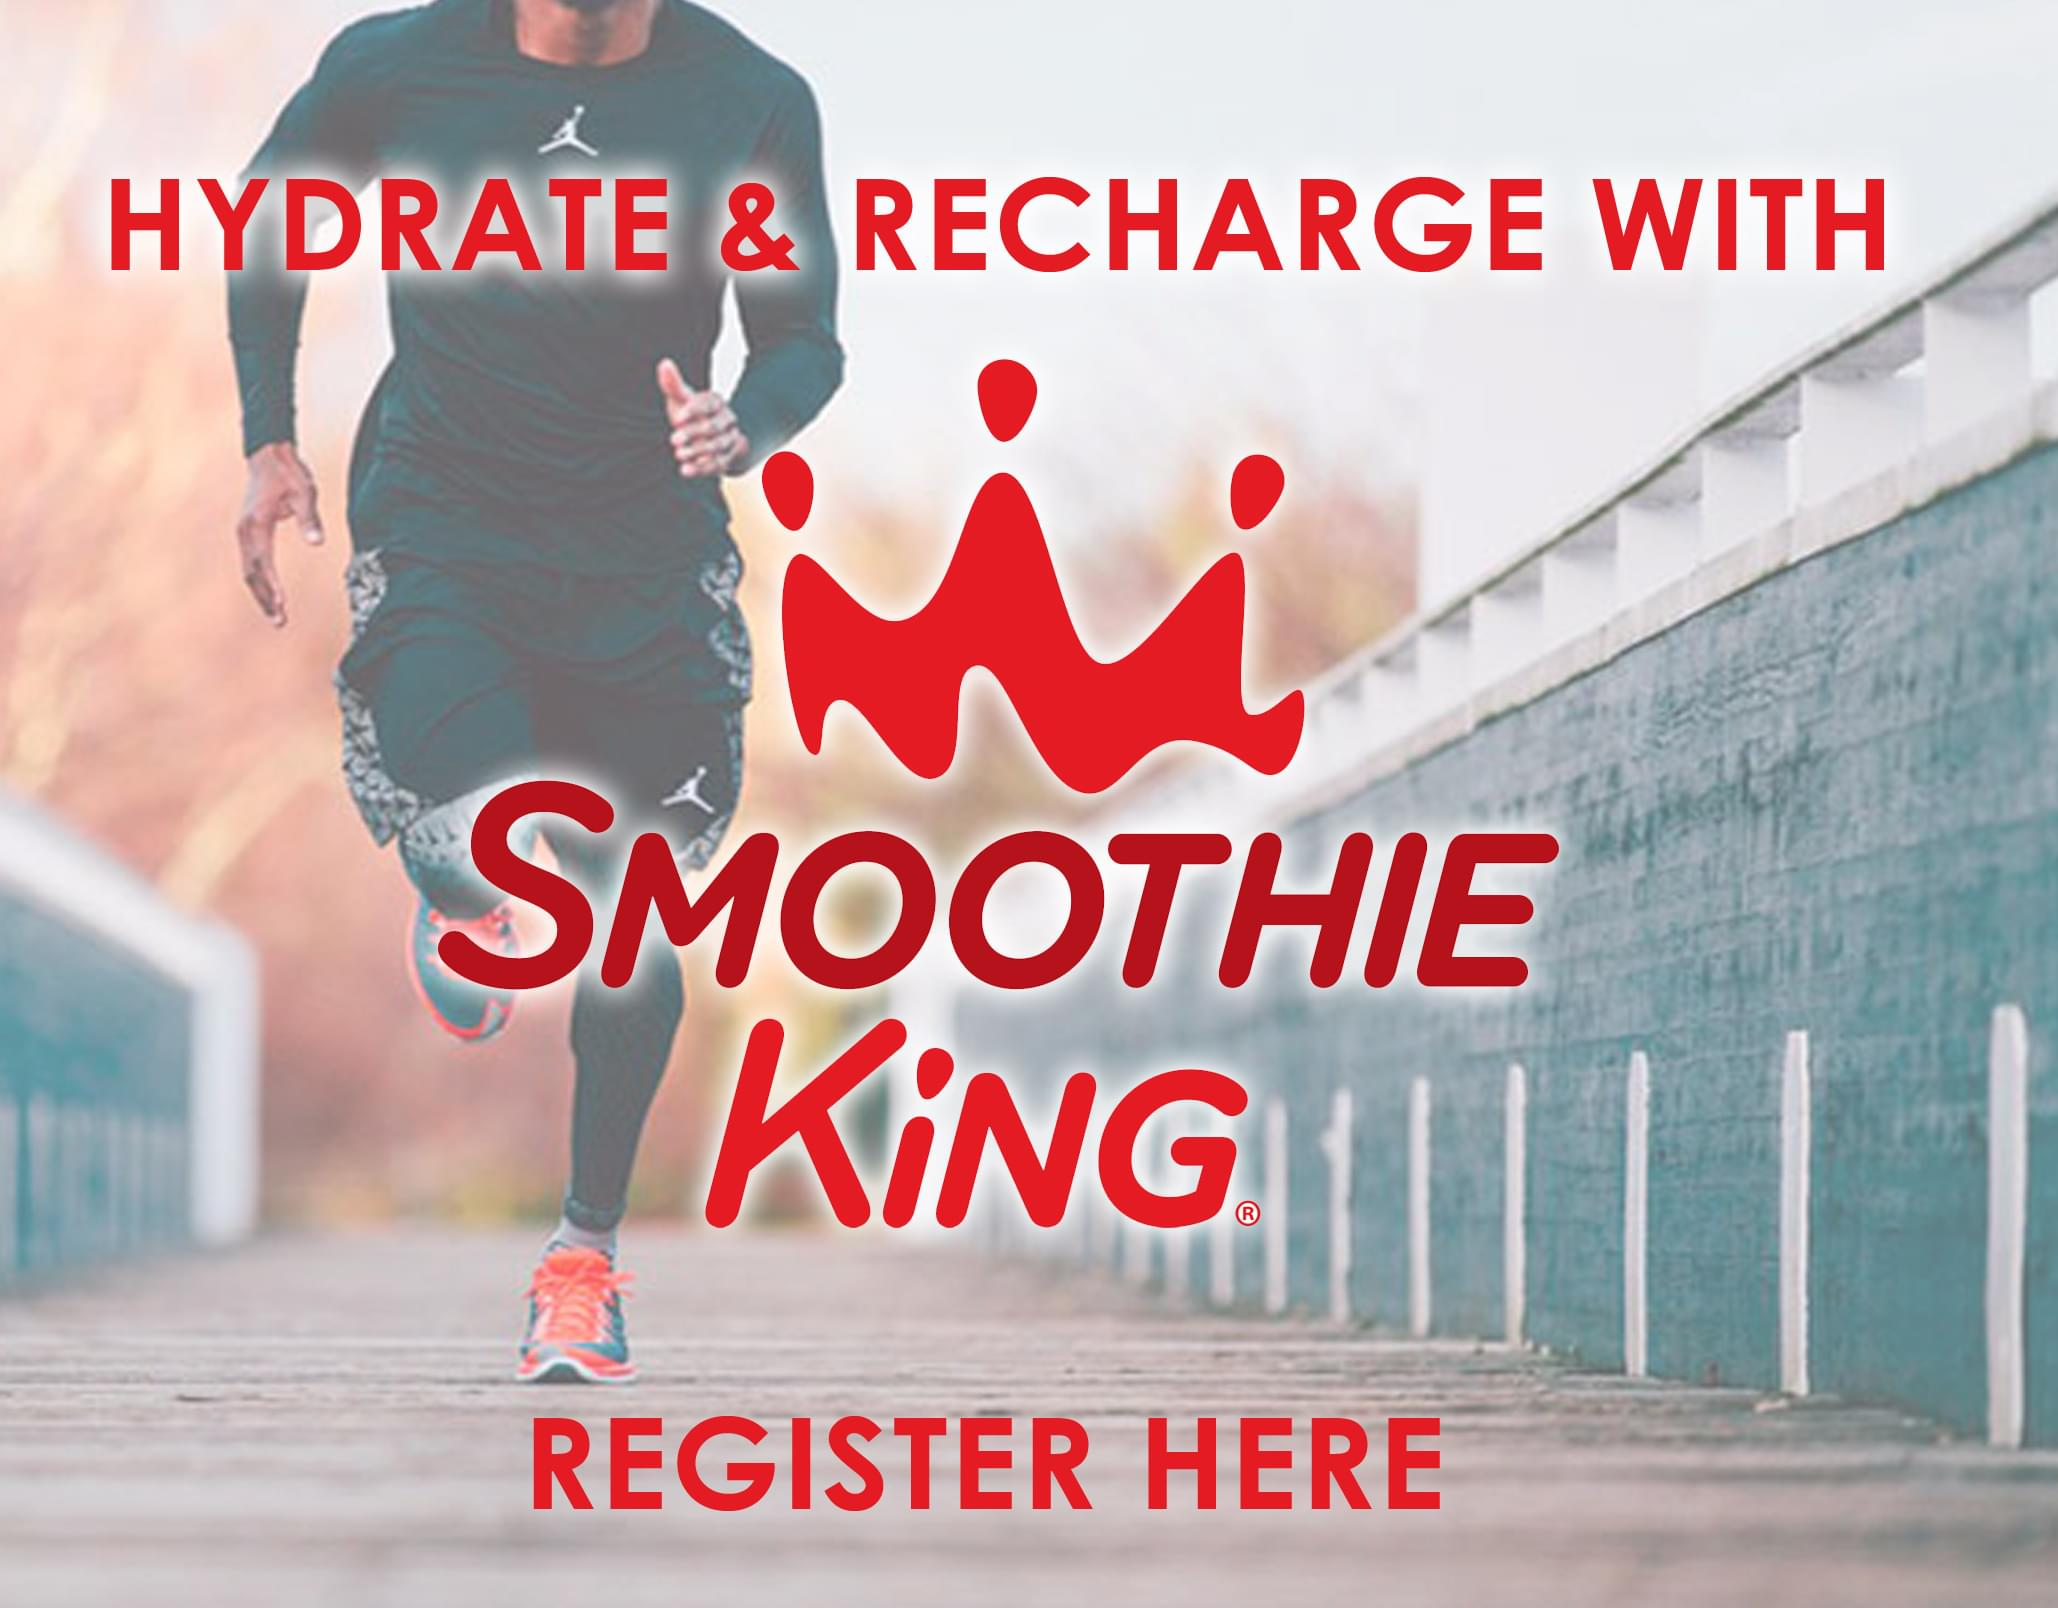 Submit & Vote for Your Favorite Photo to win a $100 Smoothie King Gift Card